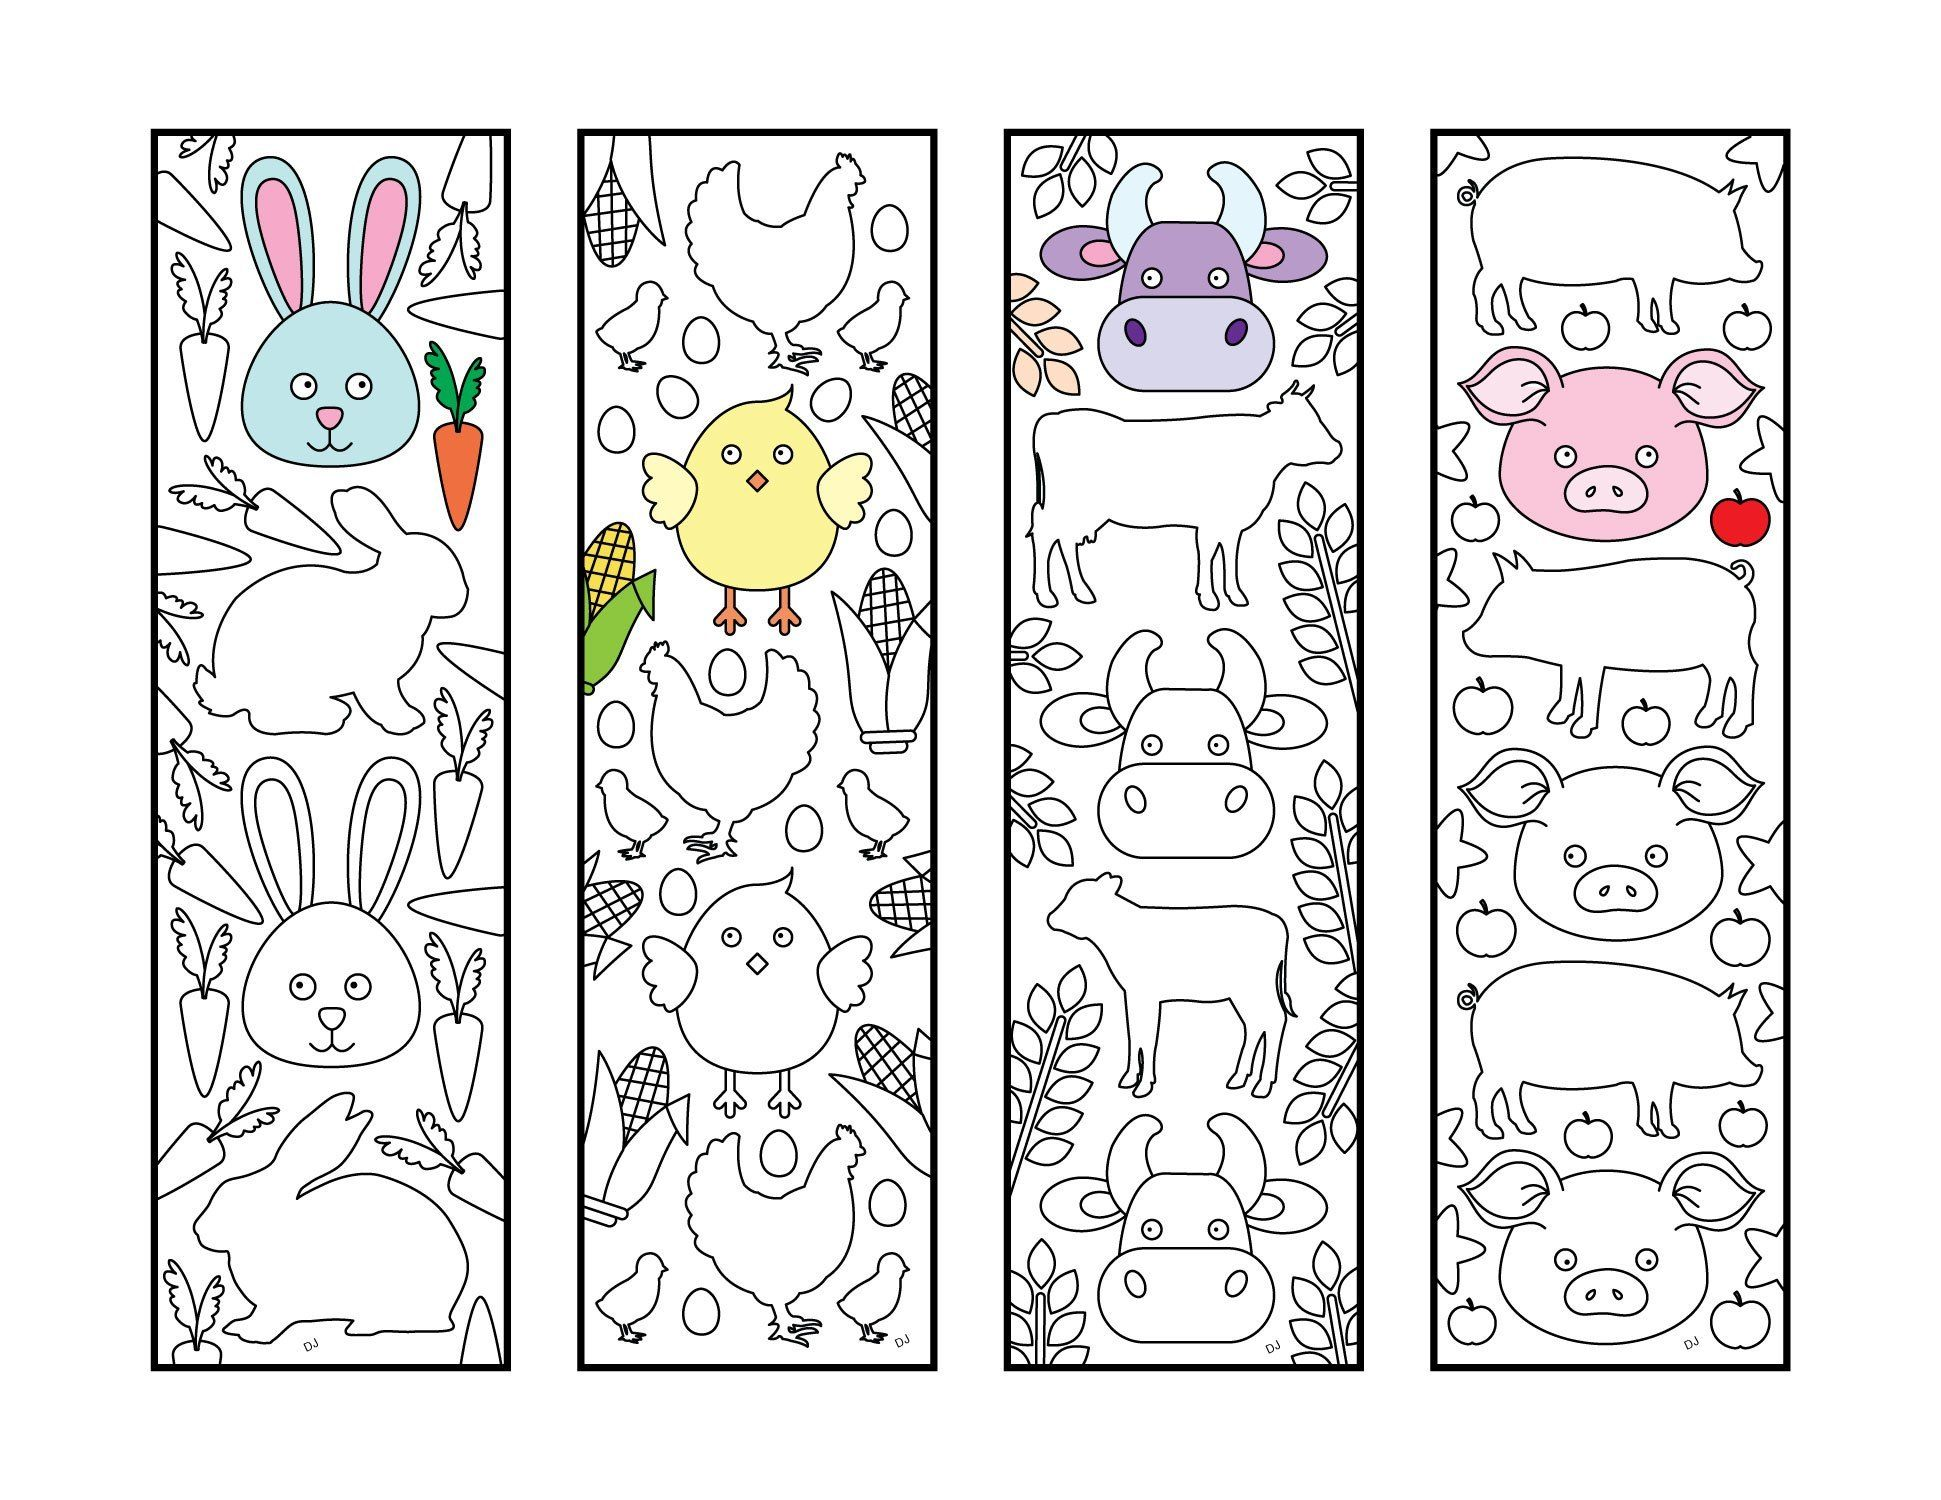 Cute Farm Animal Bookmarks Pdf Zentangle Coloring Page Scribble Stitch Coloring Pages Coloring Bookmarks Printable Coloring Pages